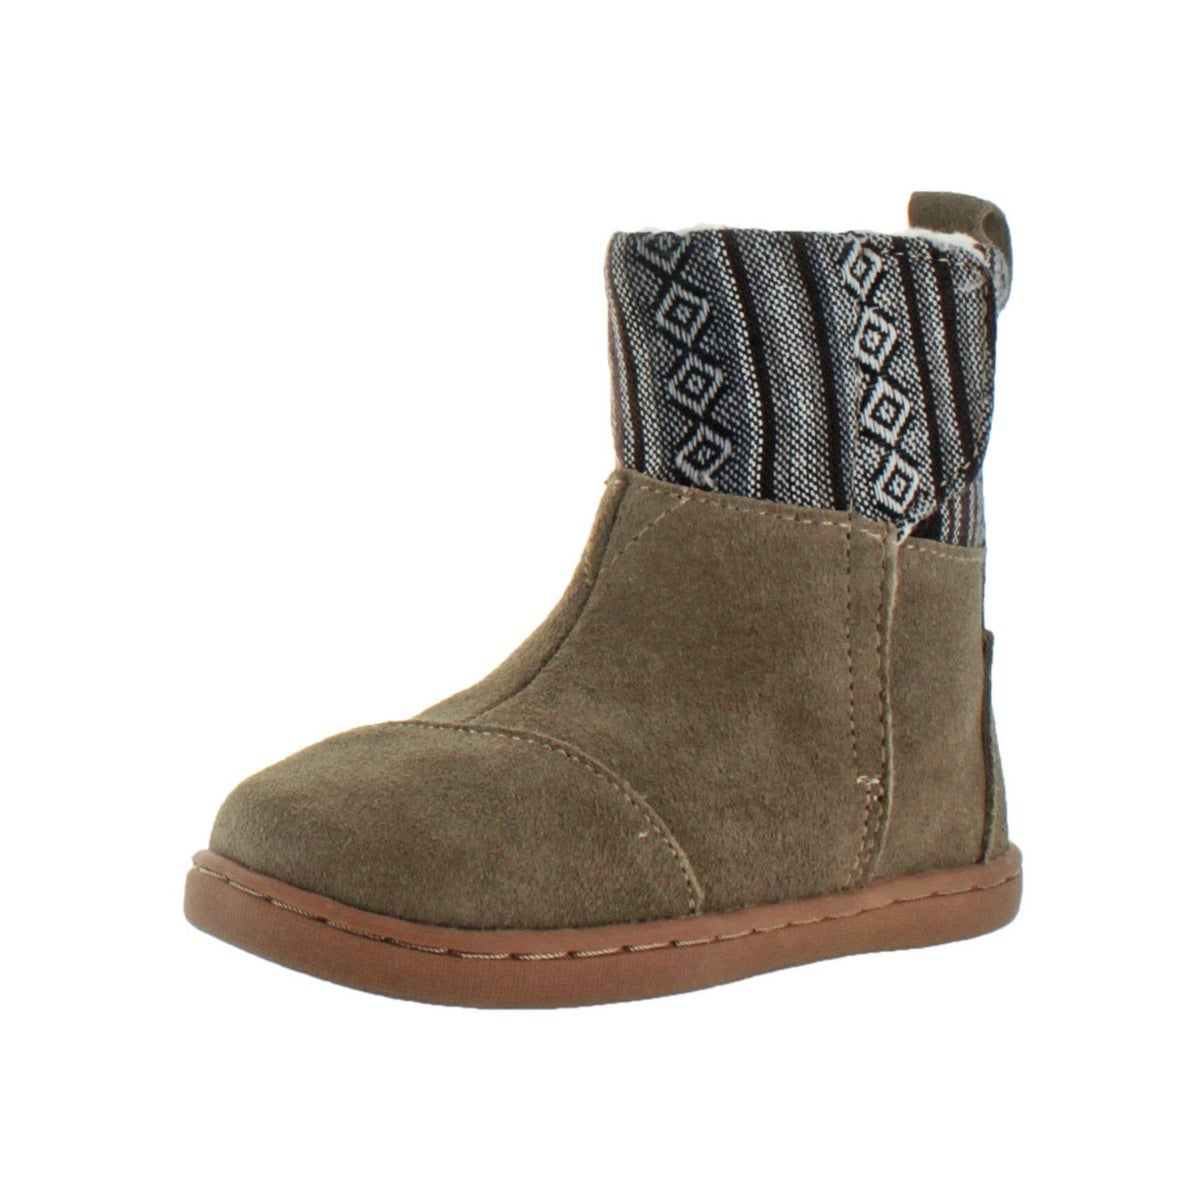 Toms Girls Nepal Boot Winter Boots Suede Pattern